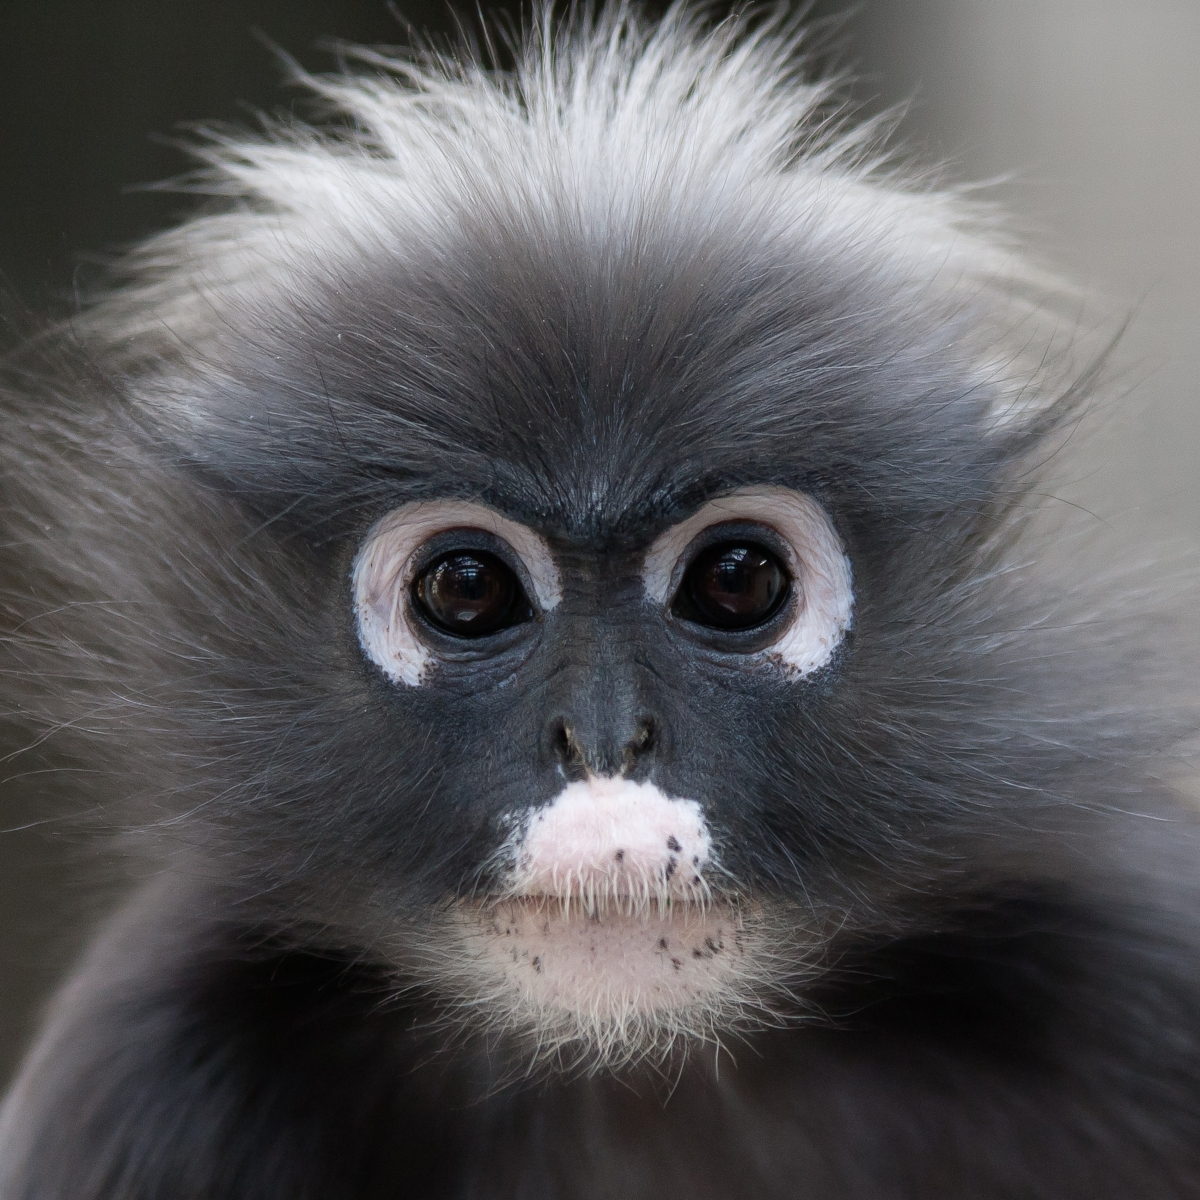 Dusky langurs—also known as spectacled langurs, dusky leaf monkeys, and spectacled leaf monkeys